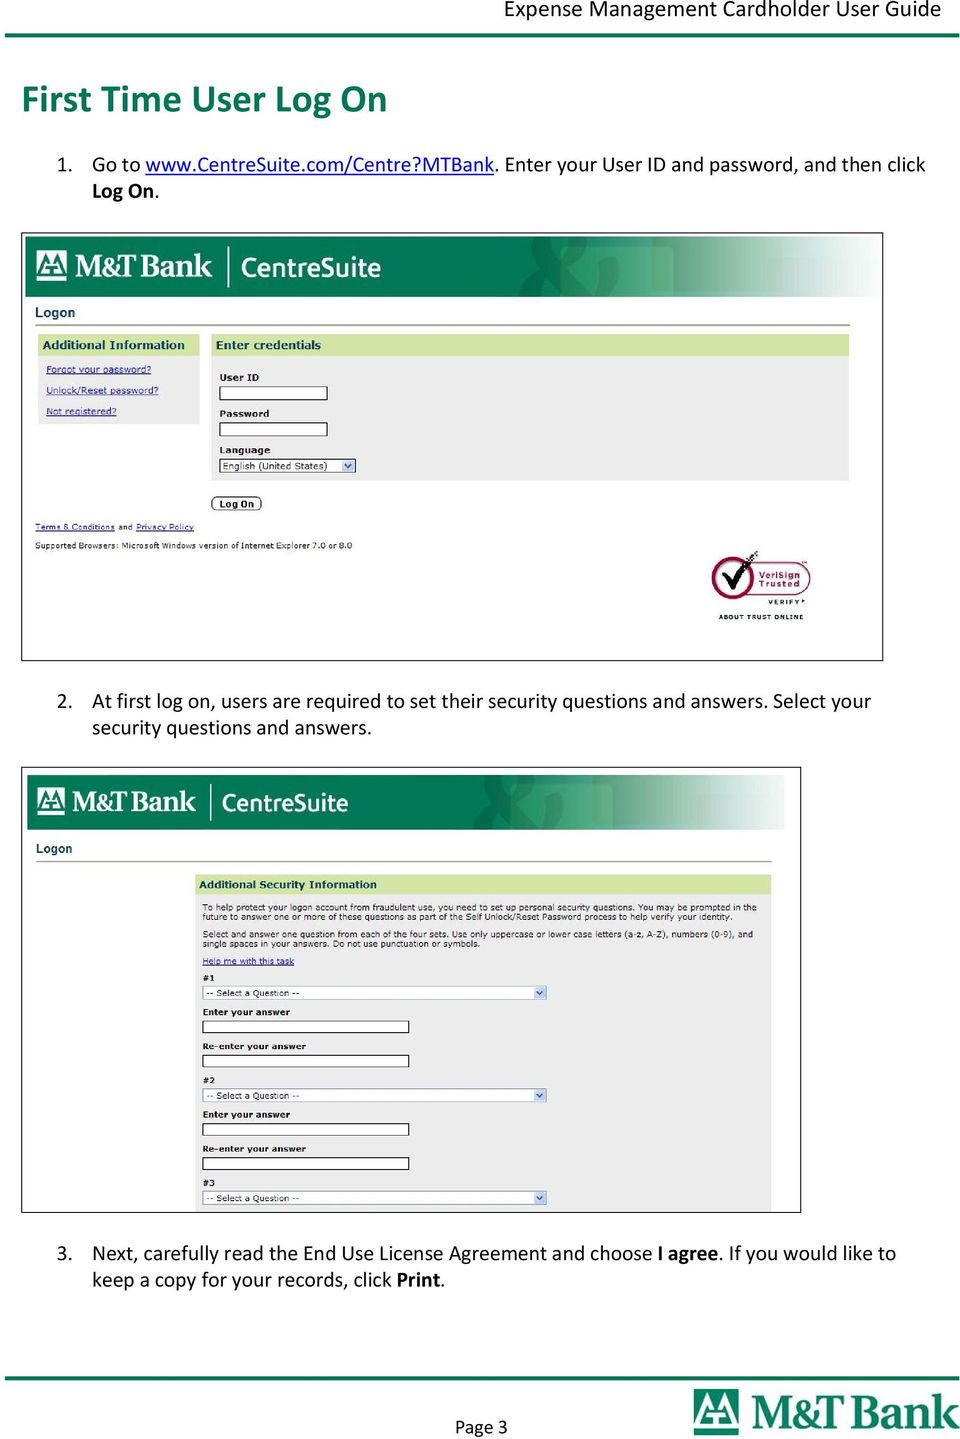 At first log on, users are required to set their security questions and answers.